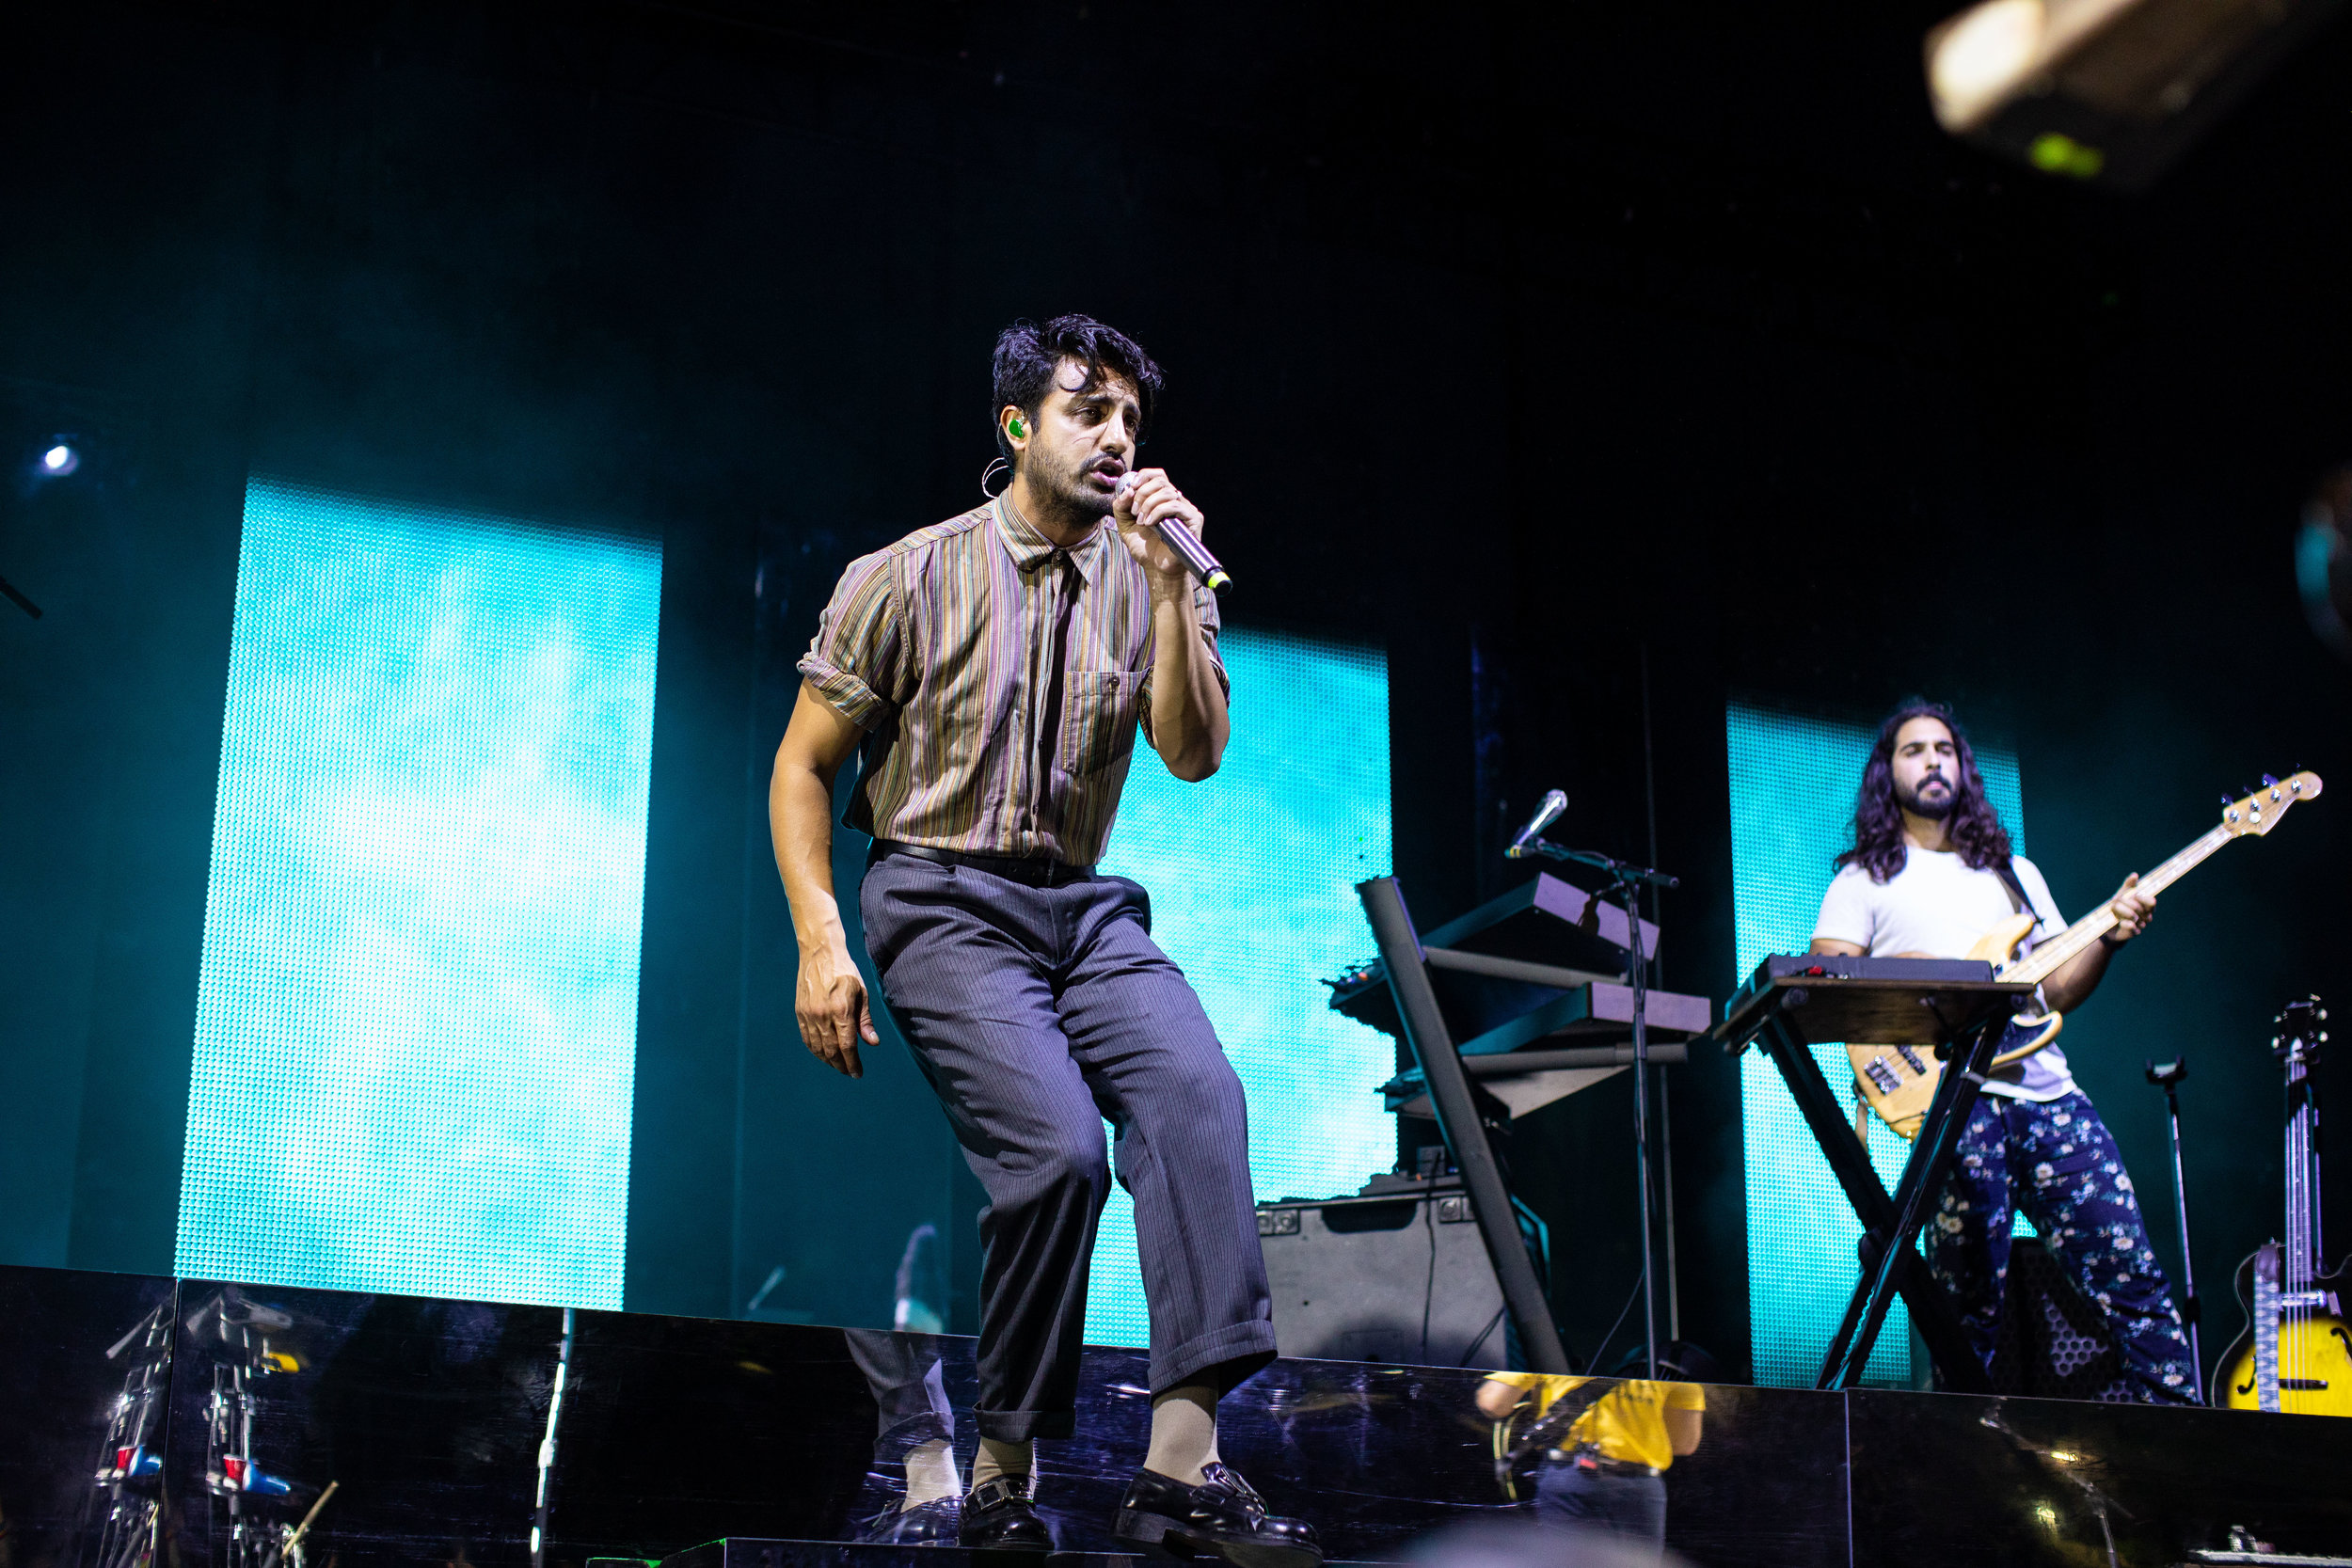 Poulos-YoungTheGiant-Raleigh-2019-1.jpg